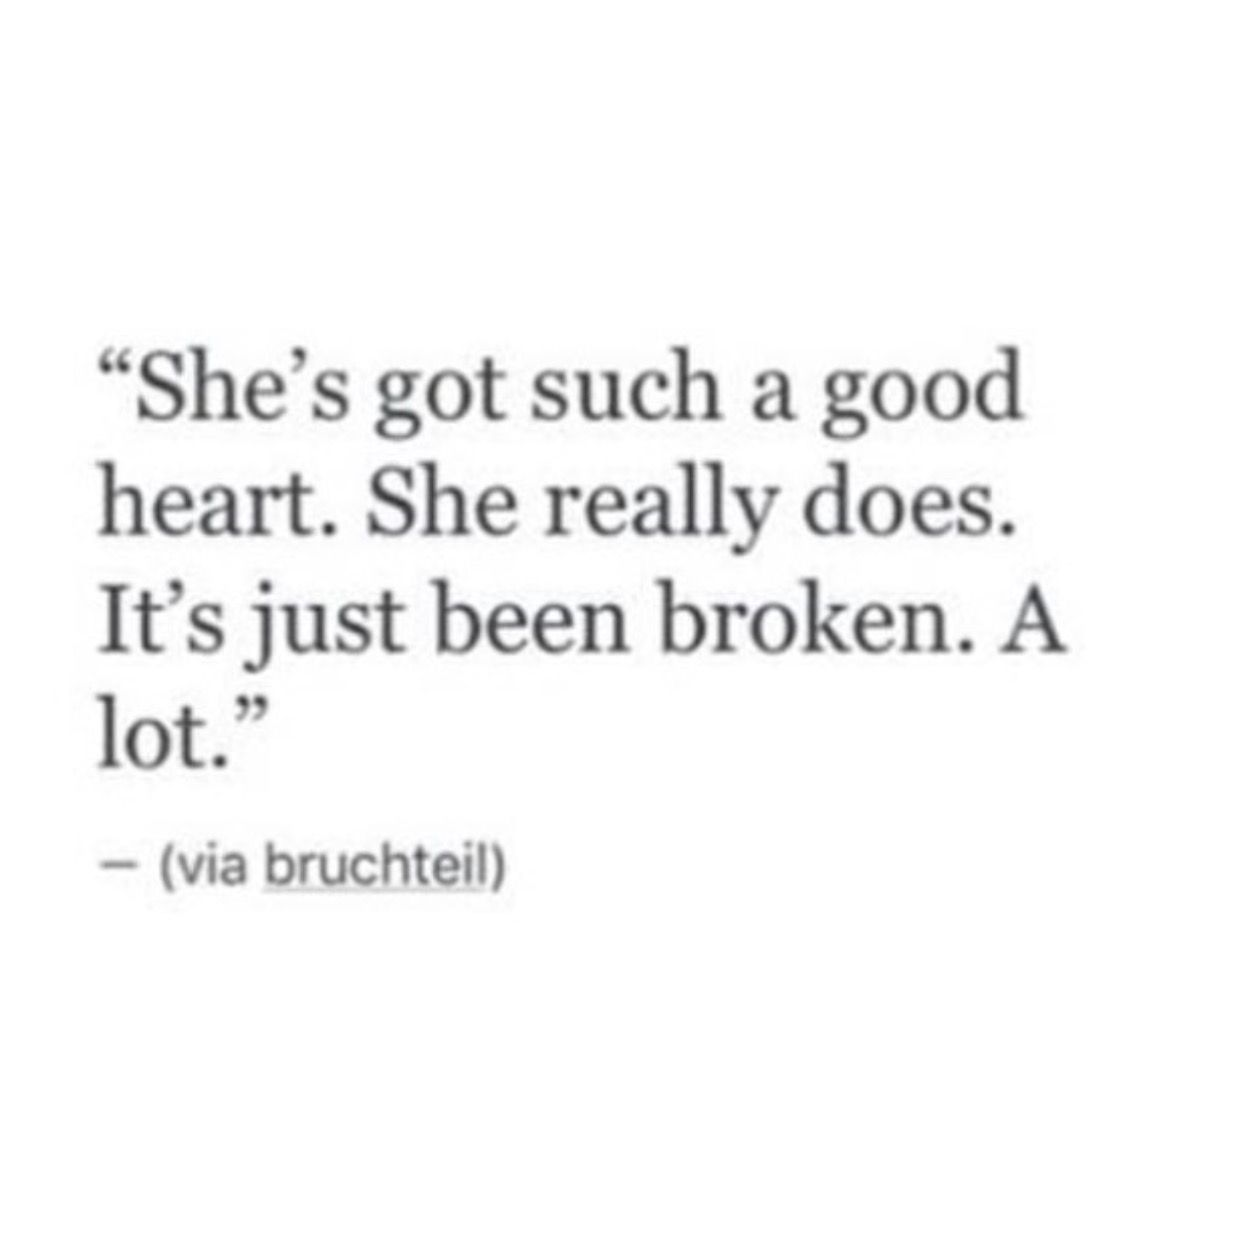 Those who have a good heart usually get their heart broken because they can love so quickly